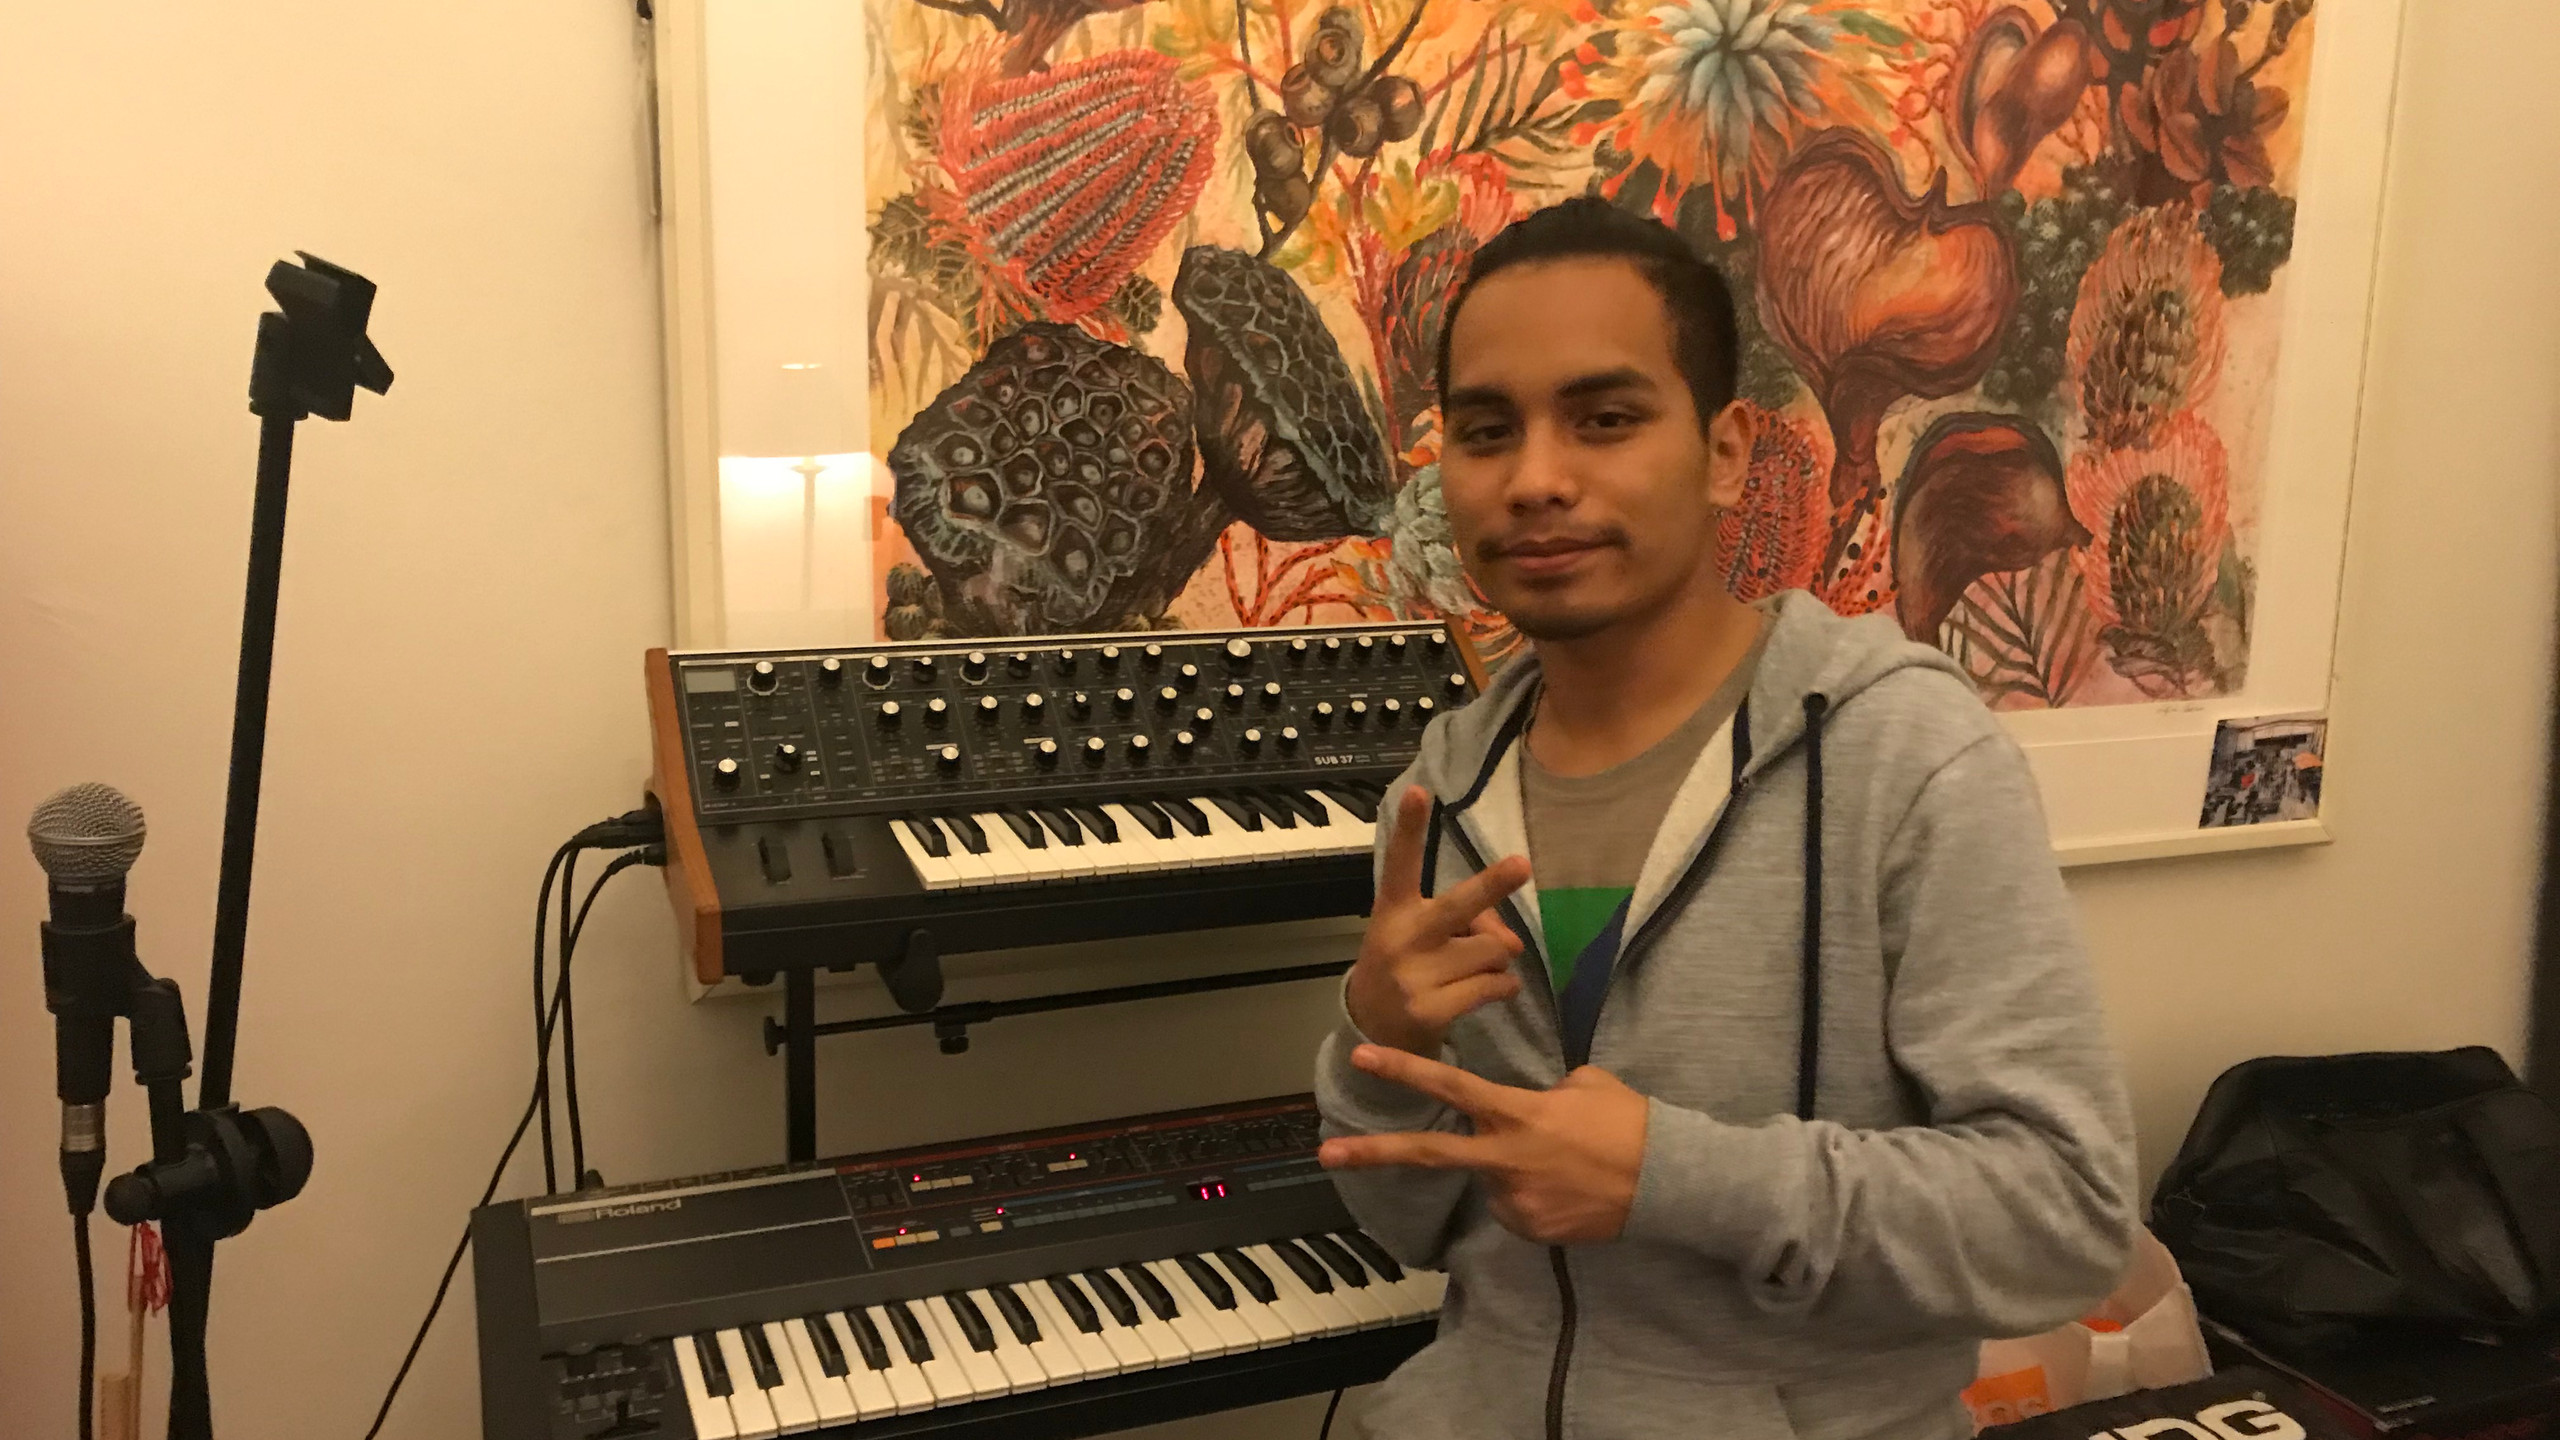 Aldie & the synths